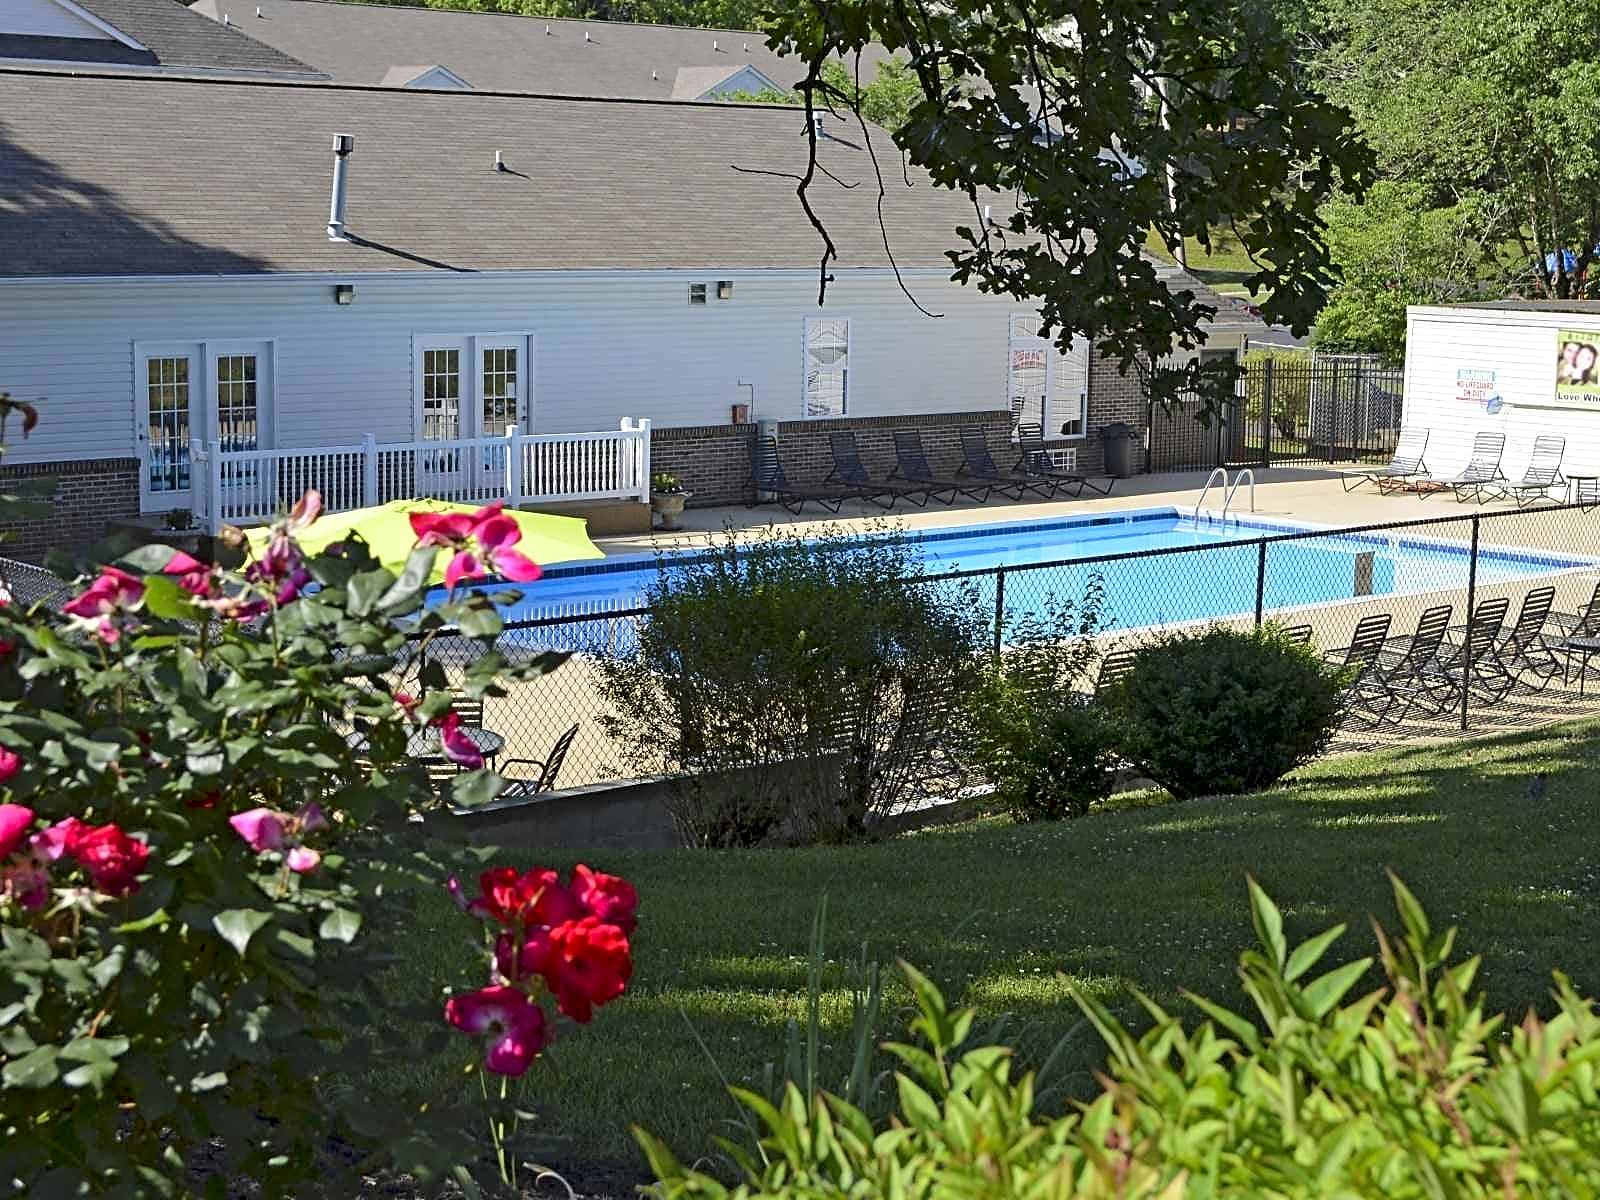 Check out our sparkling pool!